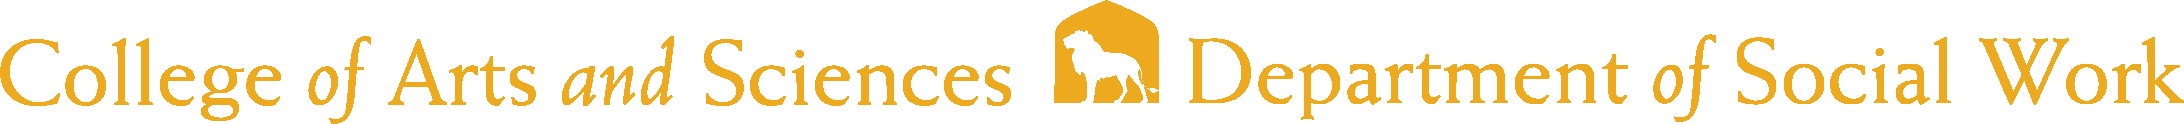 College of Arts and Sciences - Social Work Logo - Gold - Version 2